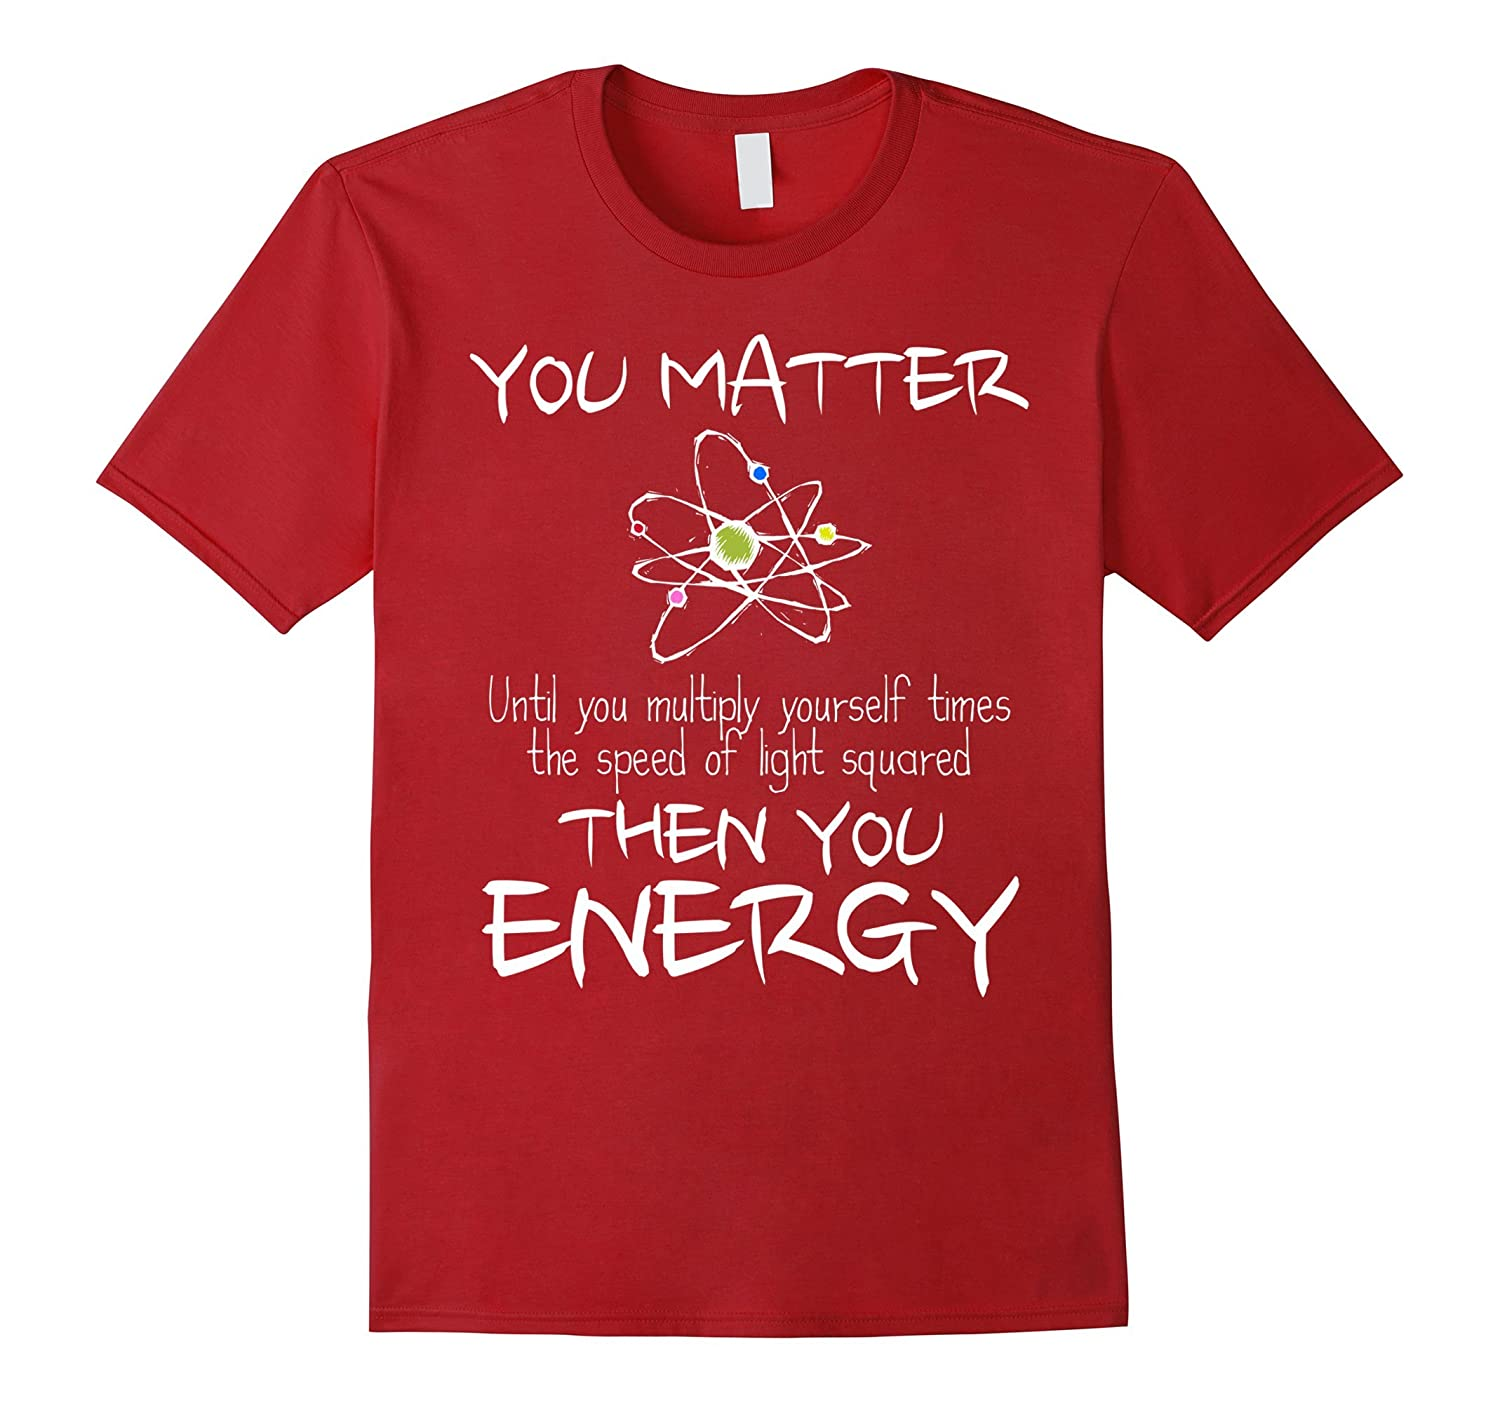 2cd9b97e4 You Matter Then You Energy Funny Science Math Physic T-Shirt-TH ...